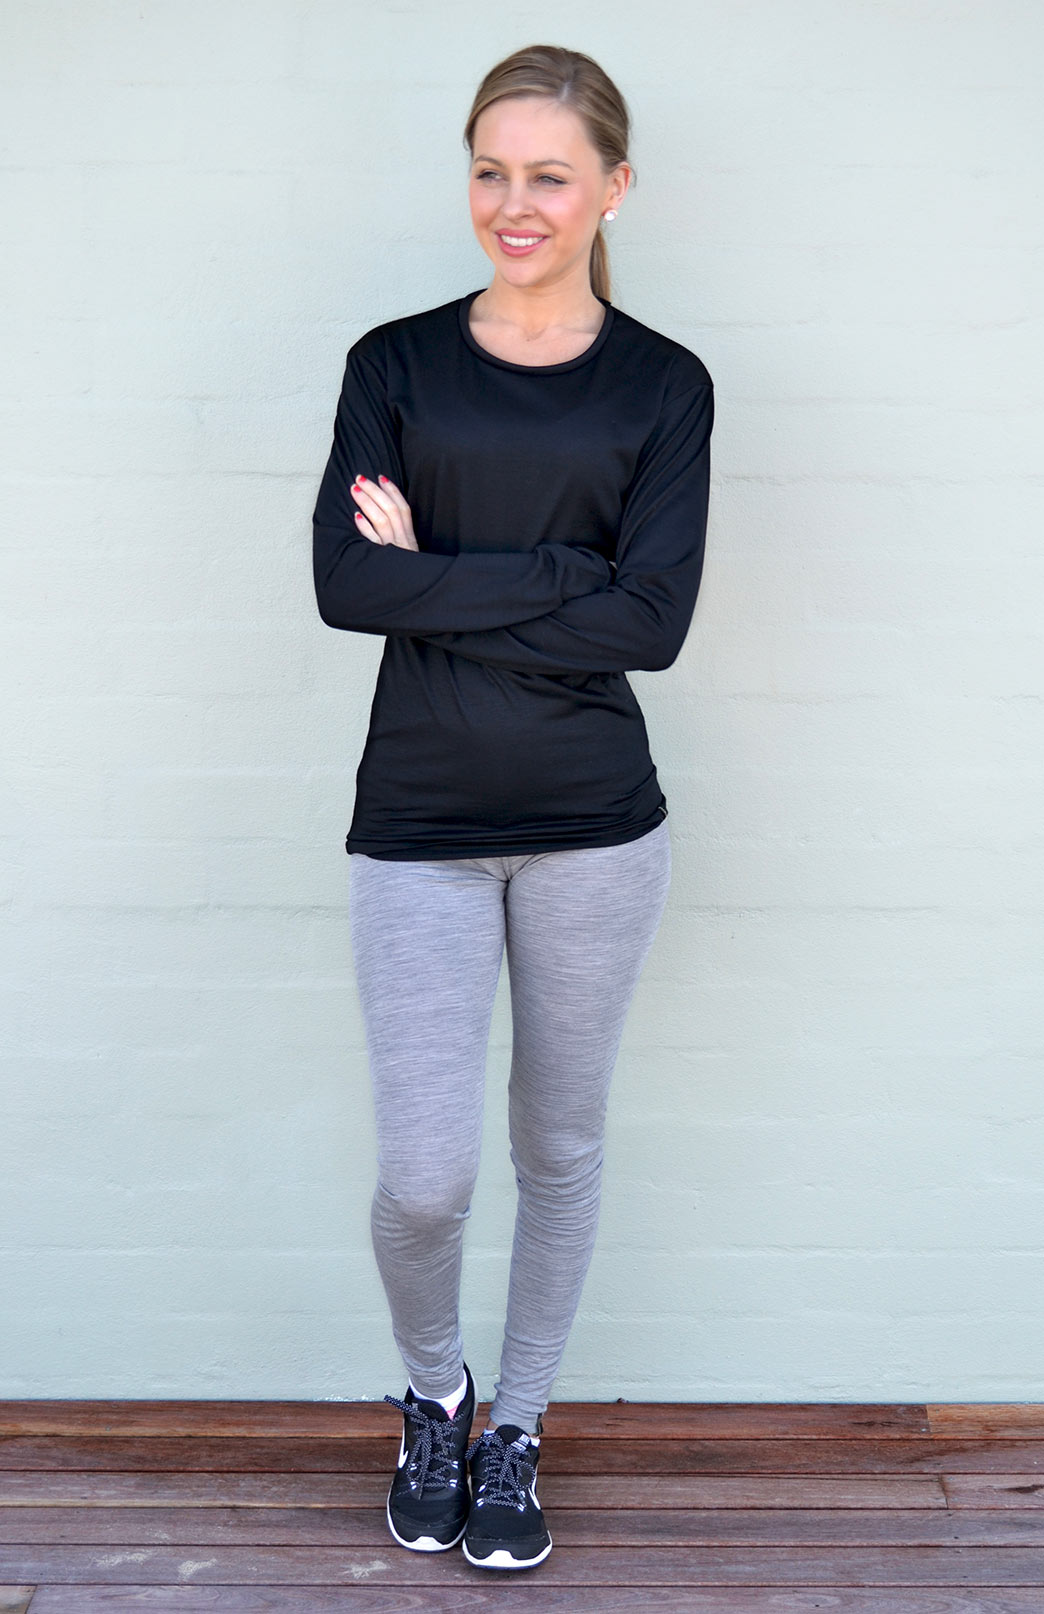 Long Sleeved Crew Neck Top - Lightweight (170g) - Women's Long Sleeved Black Pull Over Style Wool Thermal Top - Smitten Merino Tasmania Australia